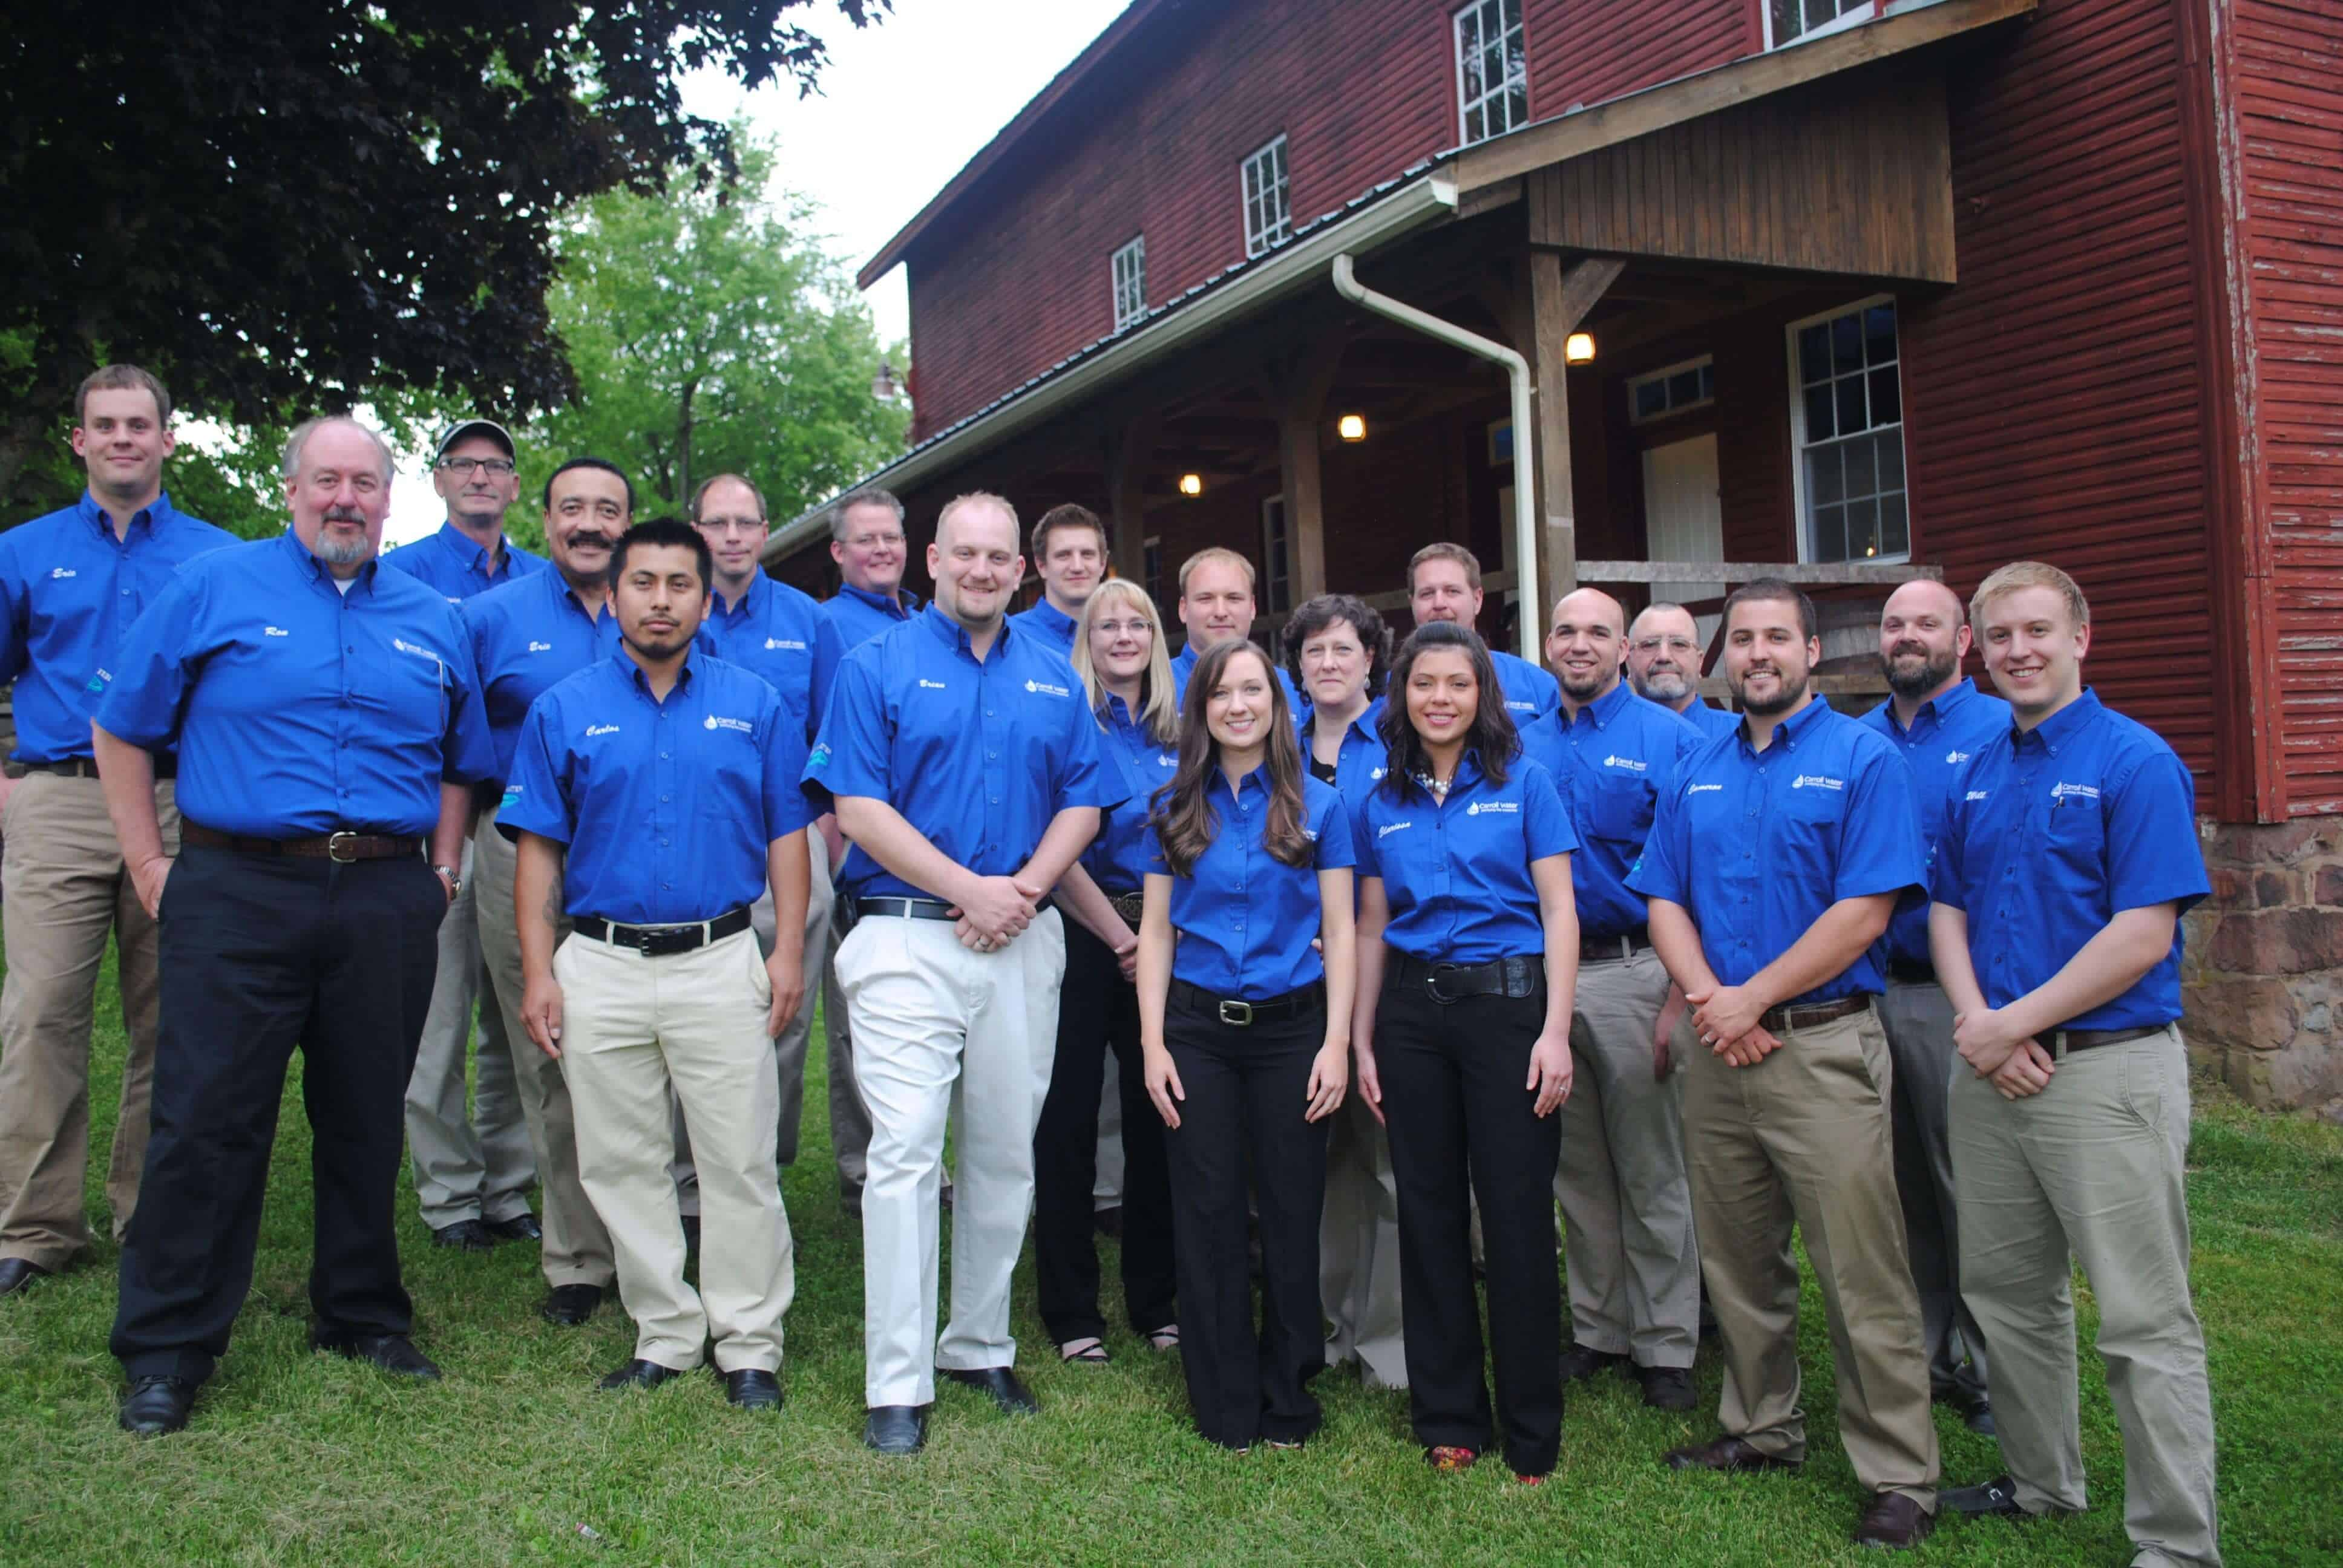 A group photo of the Carroll Water Systems team.